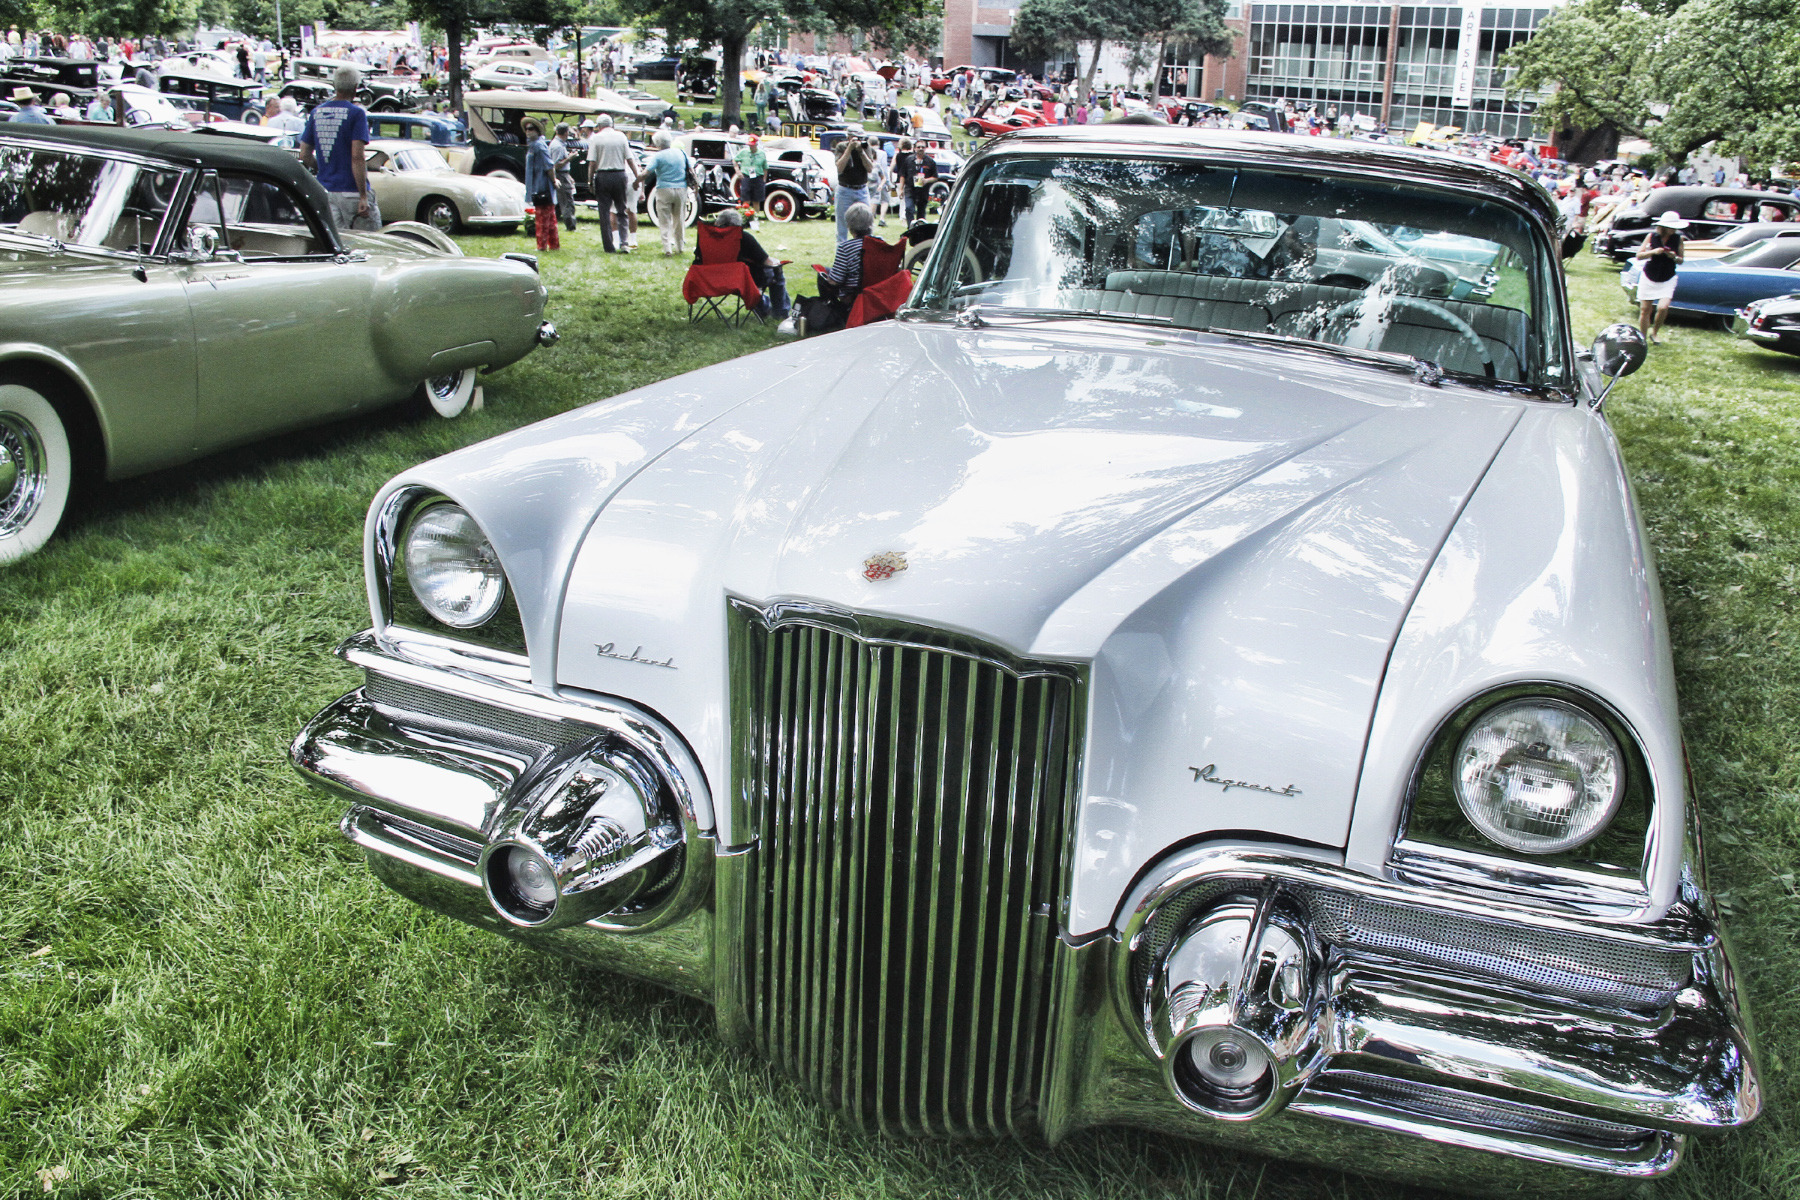 TWO-PACKARD-CONCEPT-CARS-BUILT-IN-1953